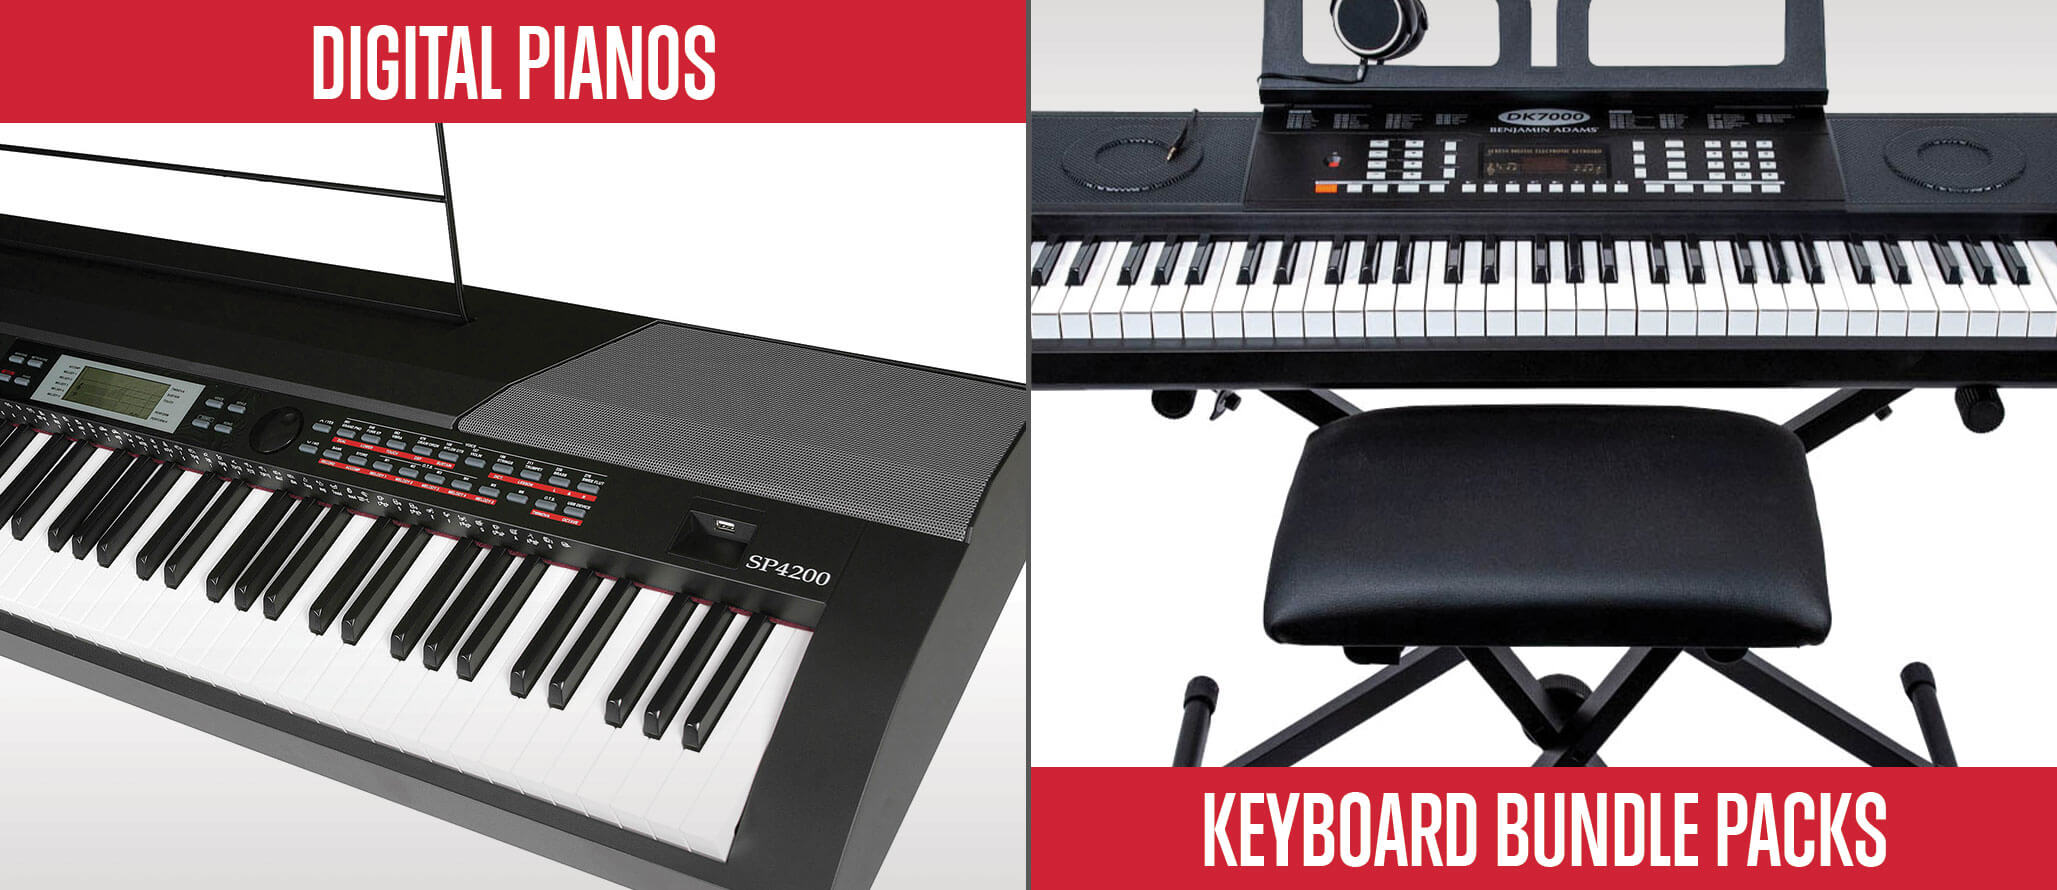 School of Rock sells keyboards and digital pianos